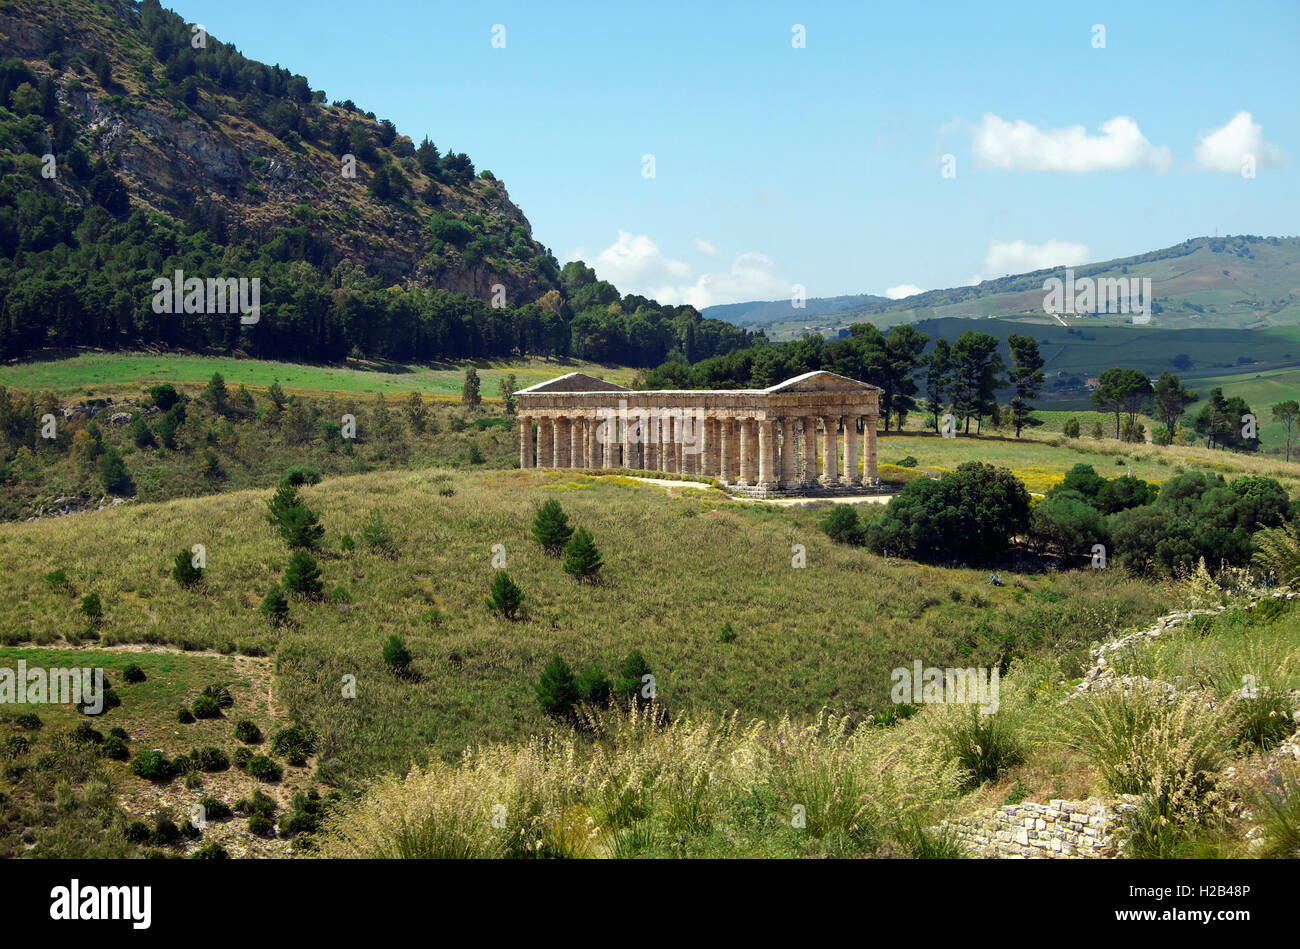 Ancient Temple of Segesta, landscape at Segesta, Province of Trapani, Sicily, Italy - Stock Image